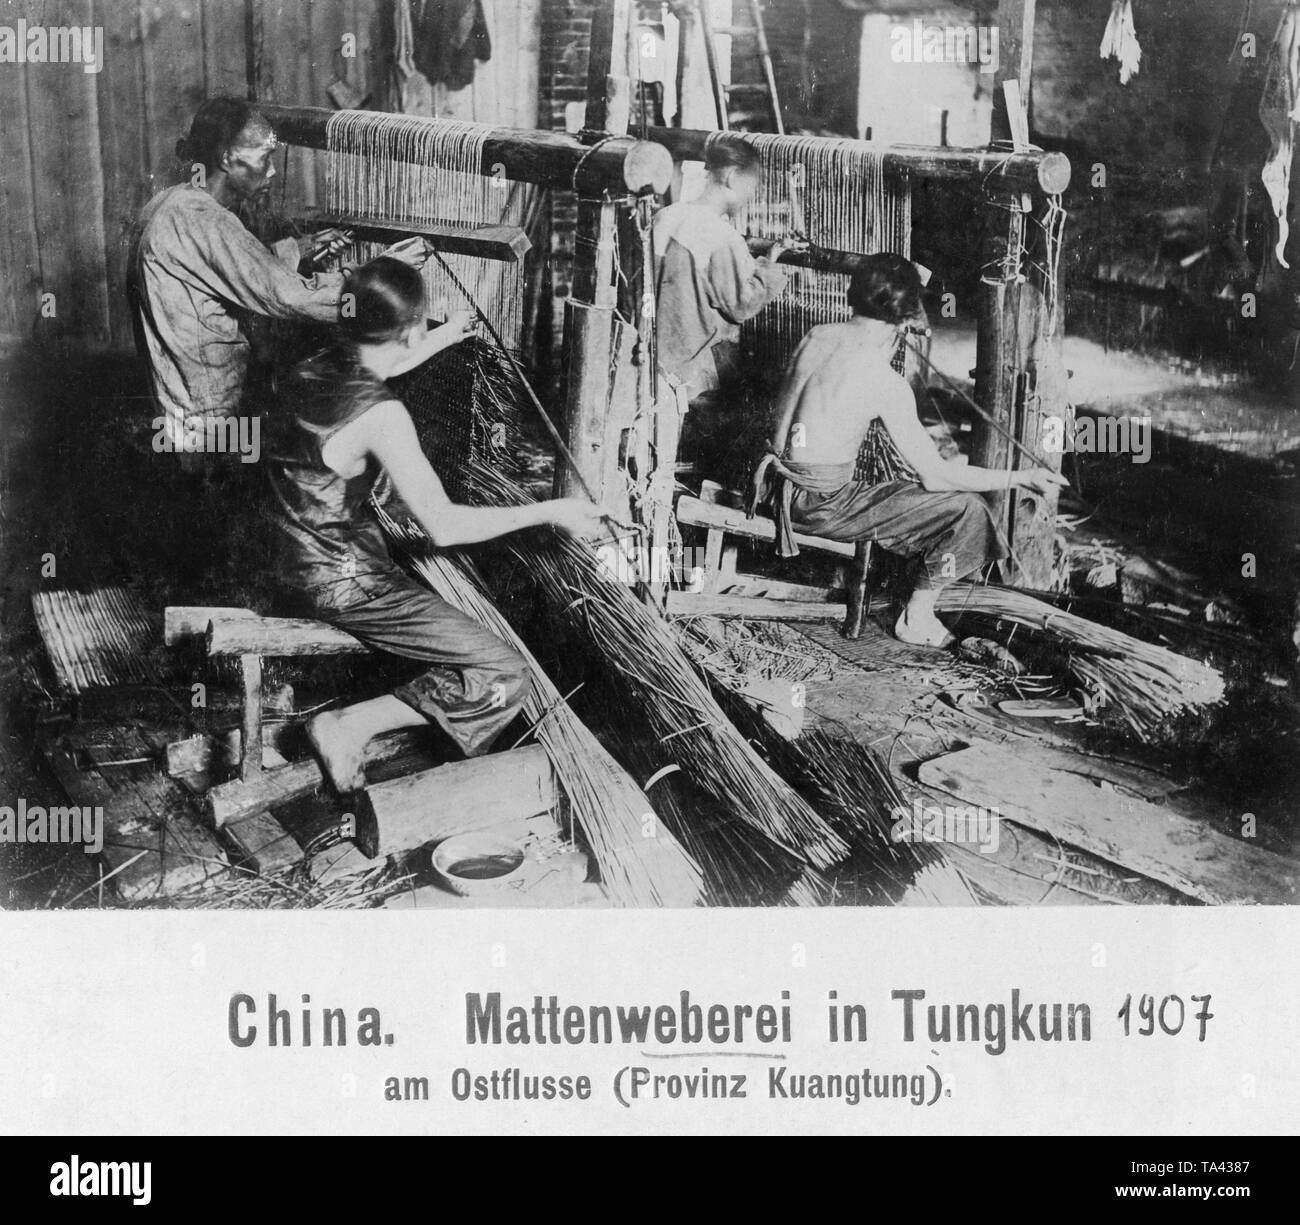 Workers in a mat weaving mill in Tungkun on the Dong River in the province of Guangdong. - Stock Image